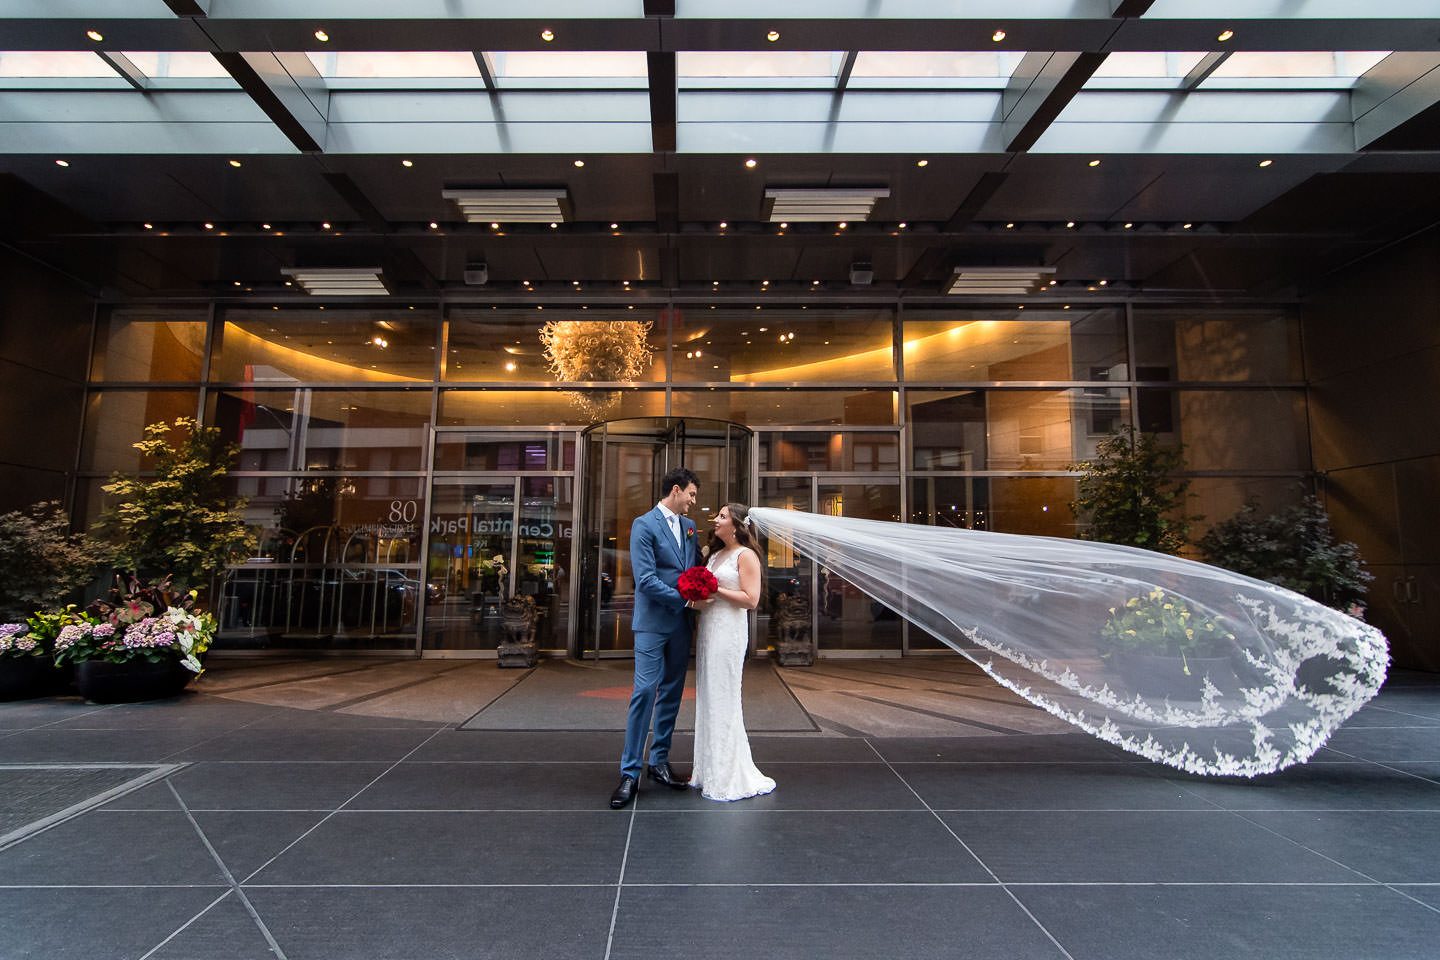 bride and groom in front of mandarin oriental hotel in nyc with her veil flying in the wind